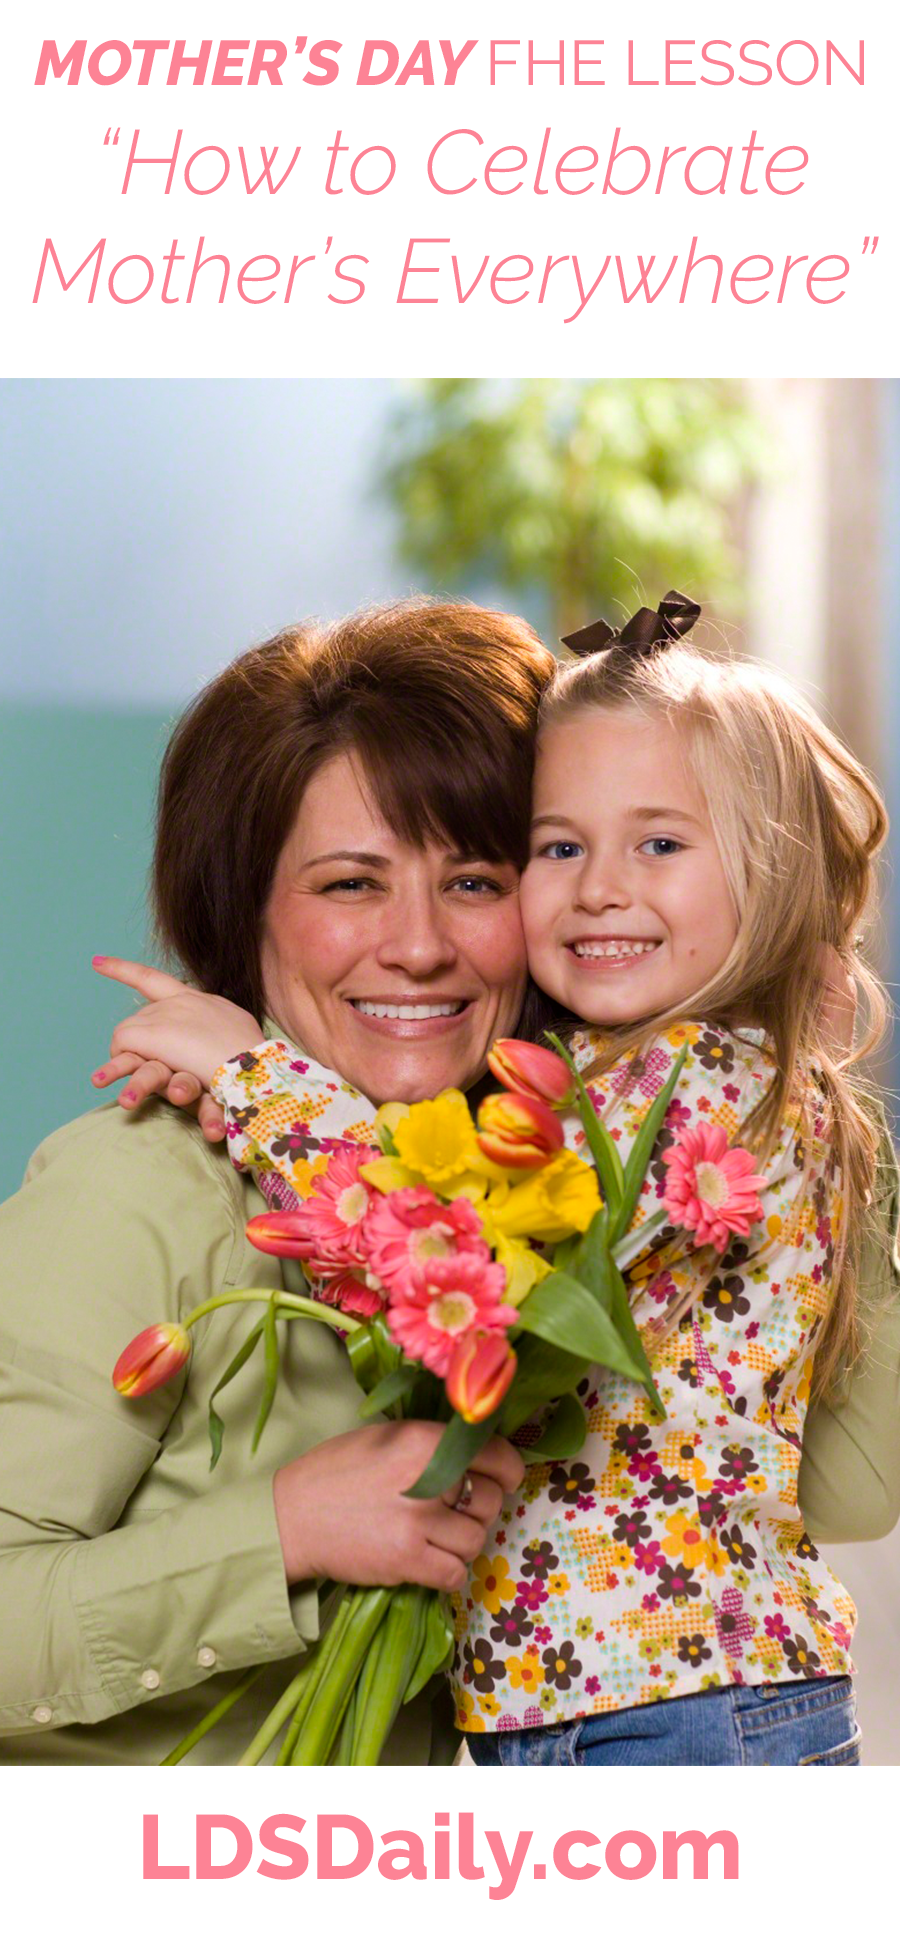 Mother's Day FHE Lesson - How to Celebrate Mothers Everywhere  LDS Daily